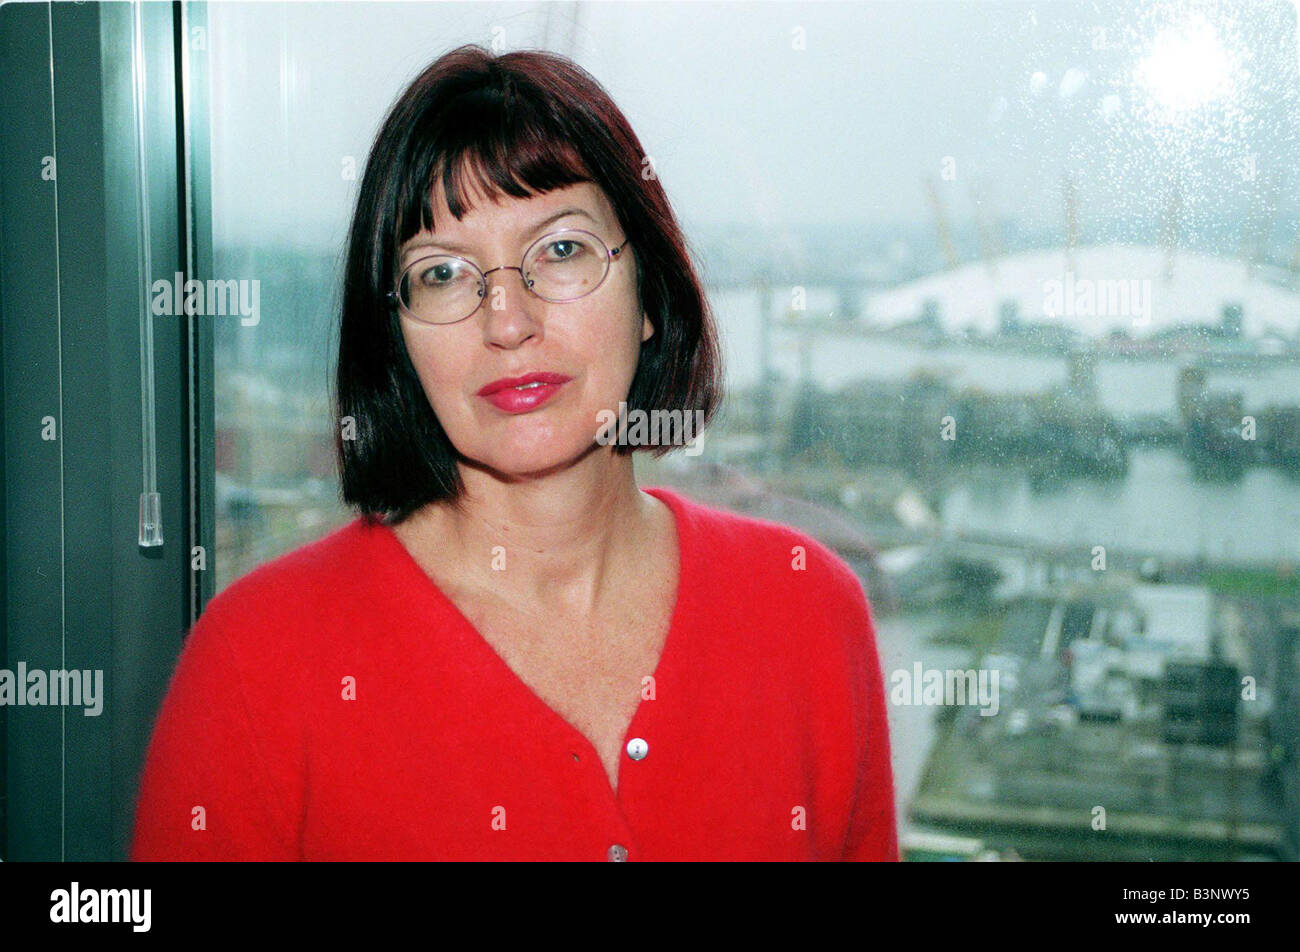 Janet Street Porter January 2000 Editor of Independent On Sunday - Stock Image